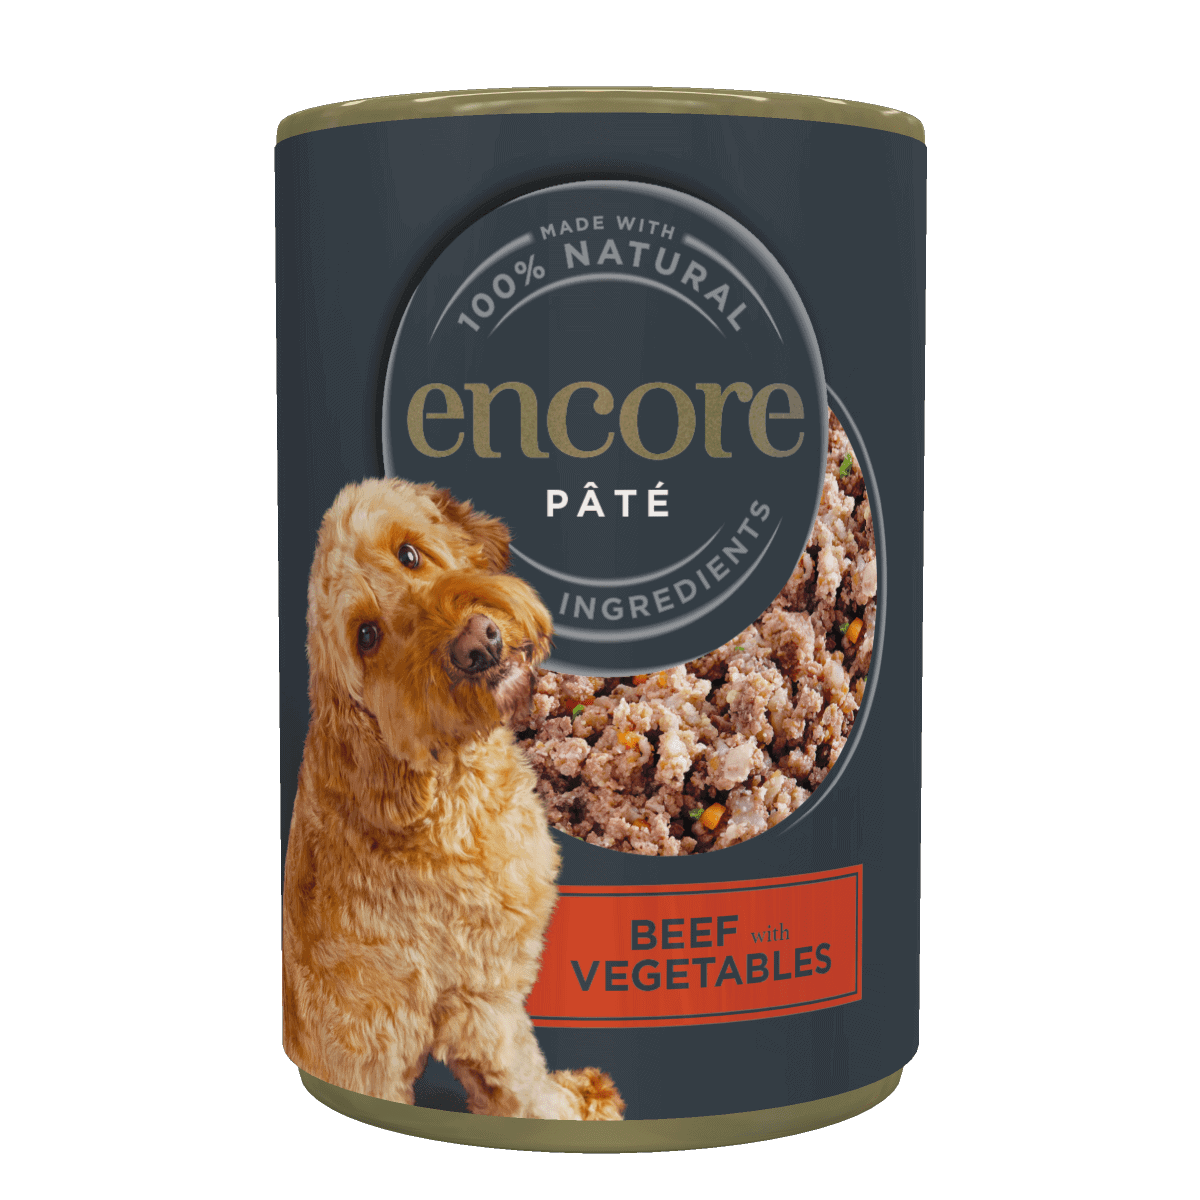 Close up of a tin of beef dog food pate with vegetables